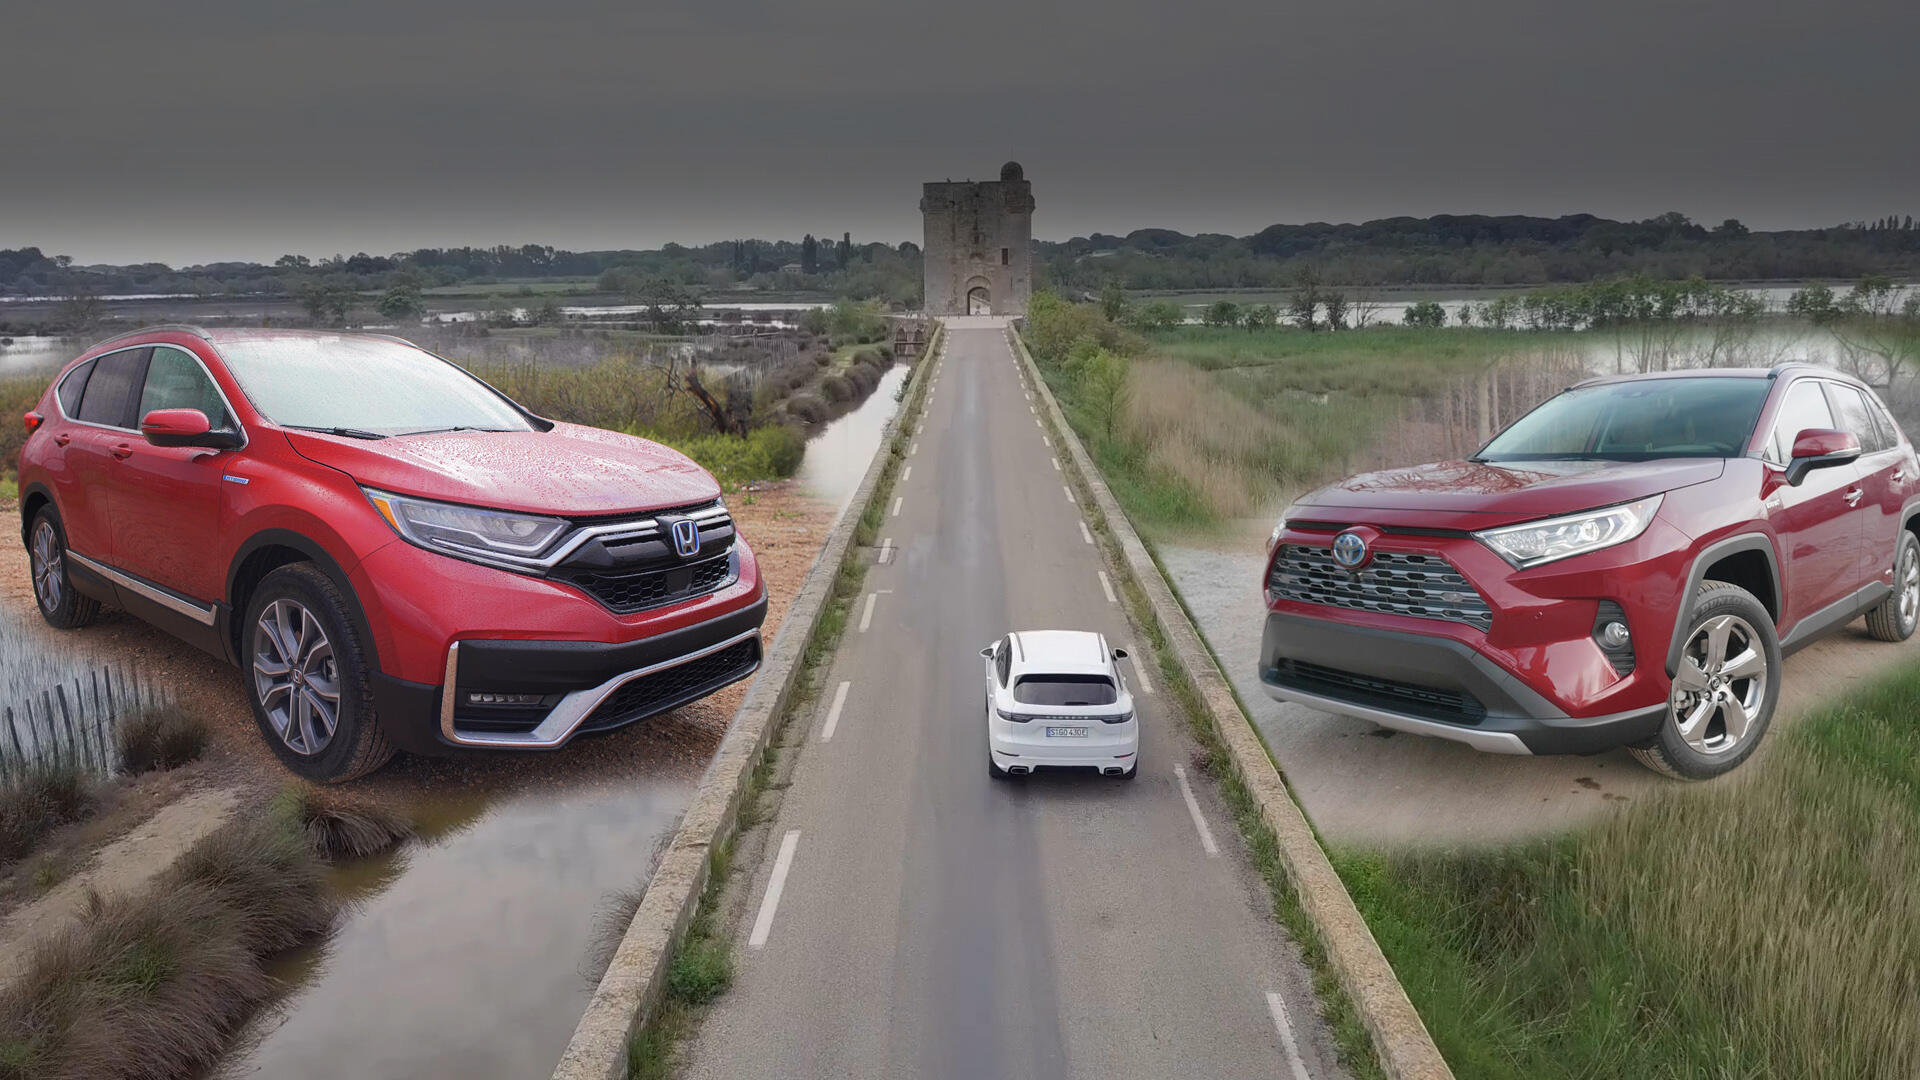 Video: AutoComplete: Our favorite hybrid crossovers for 2020